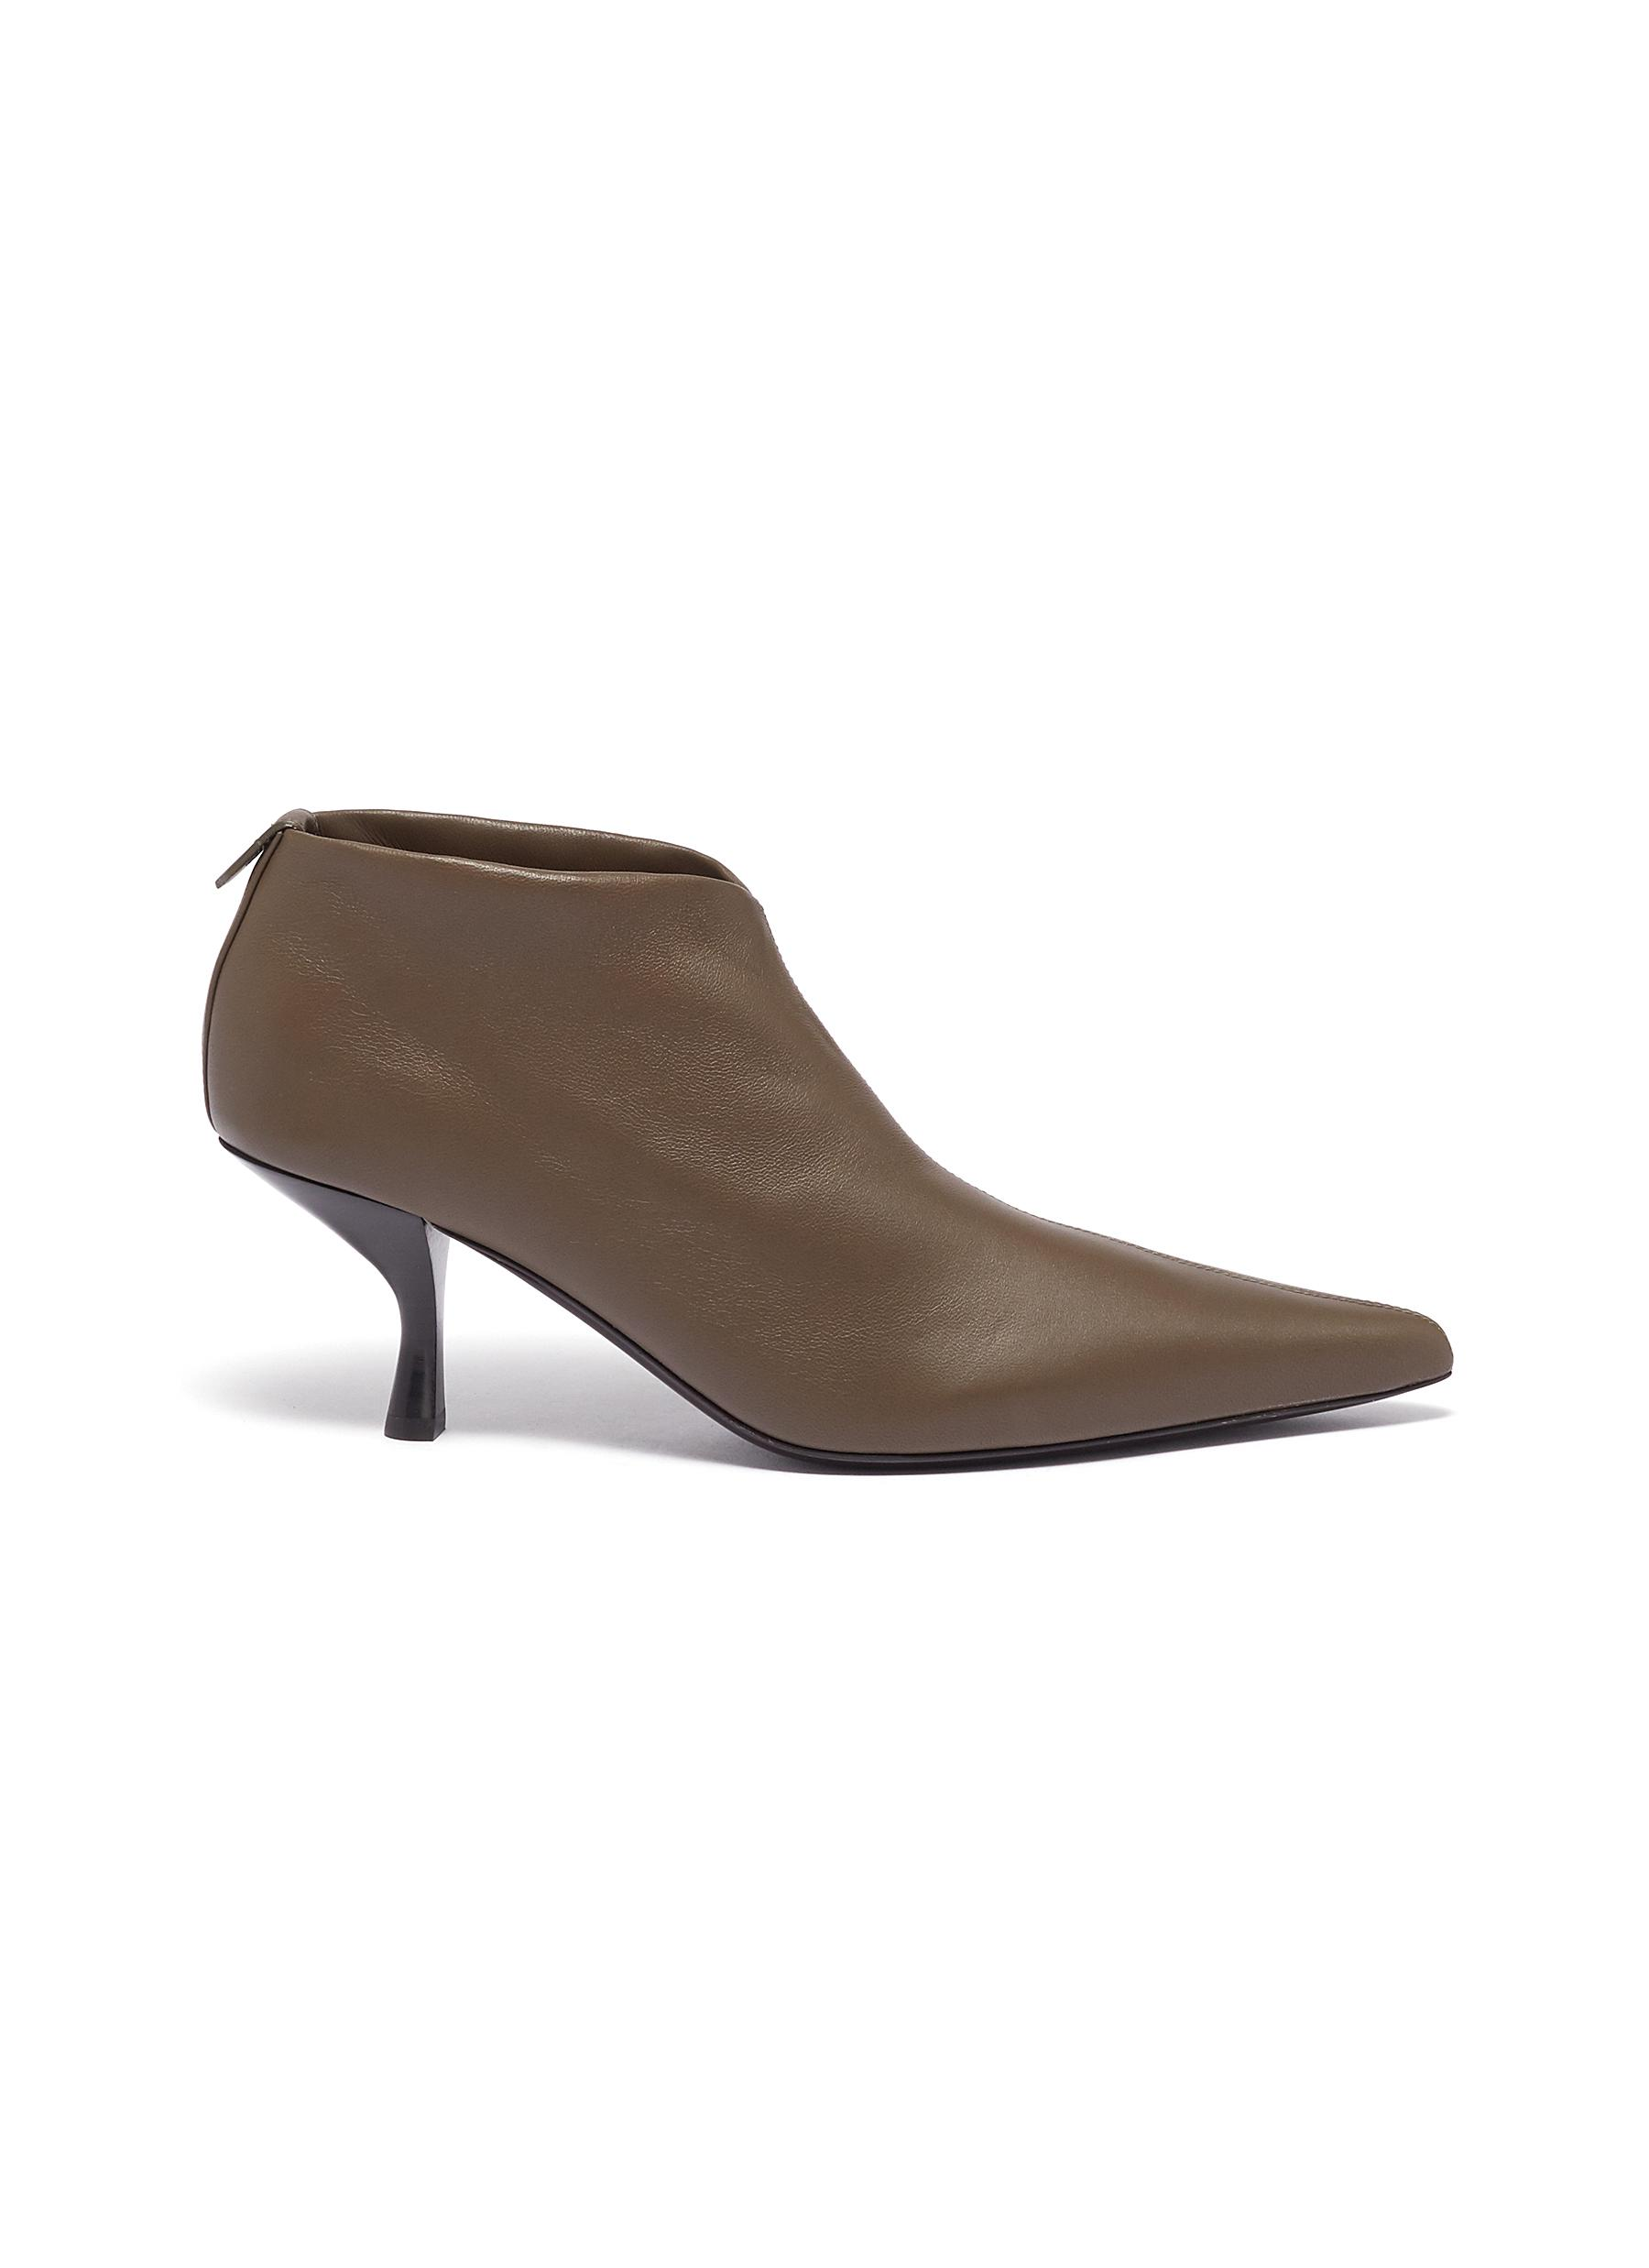 Bourgeoise slant heel leather ankle boots by The Row